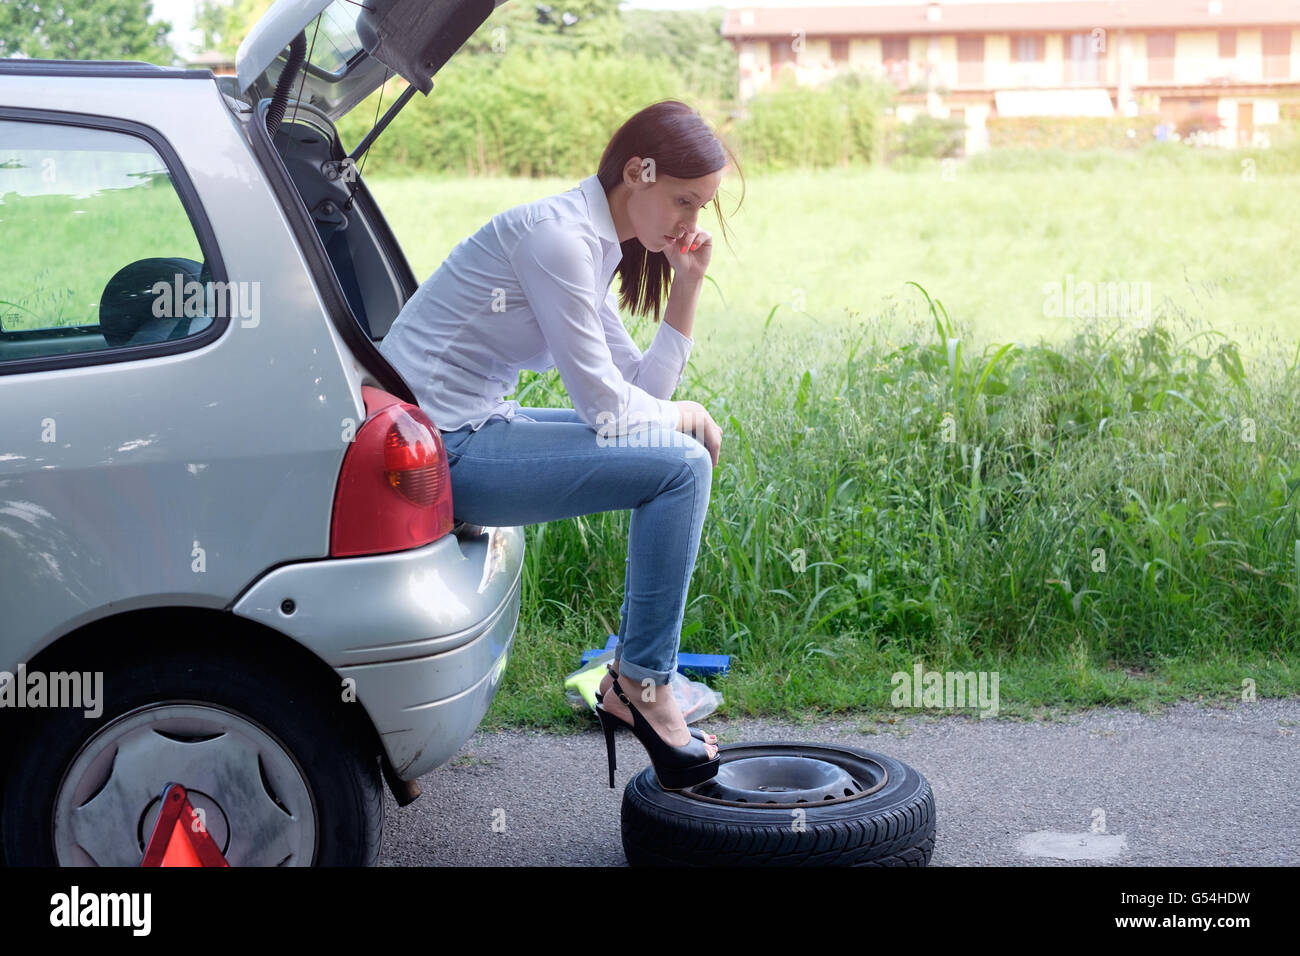 Sad woman calling assistance service  after unexpected vehicle breakdown - Stock Image